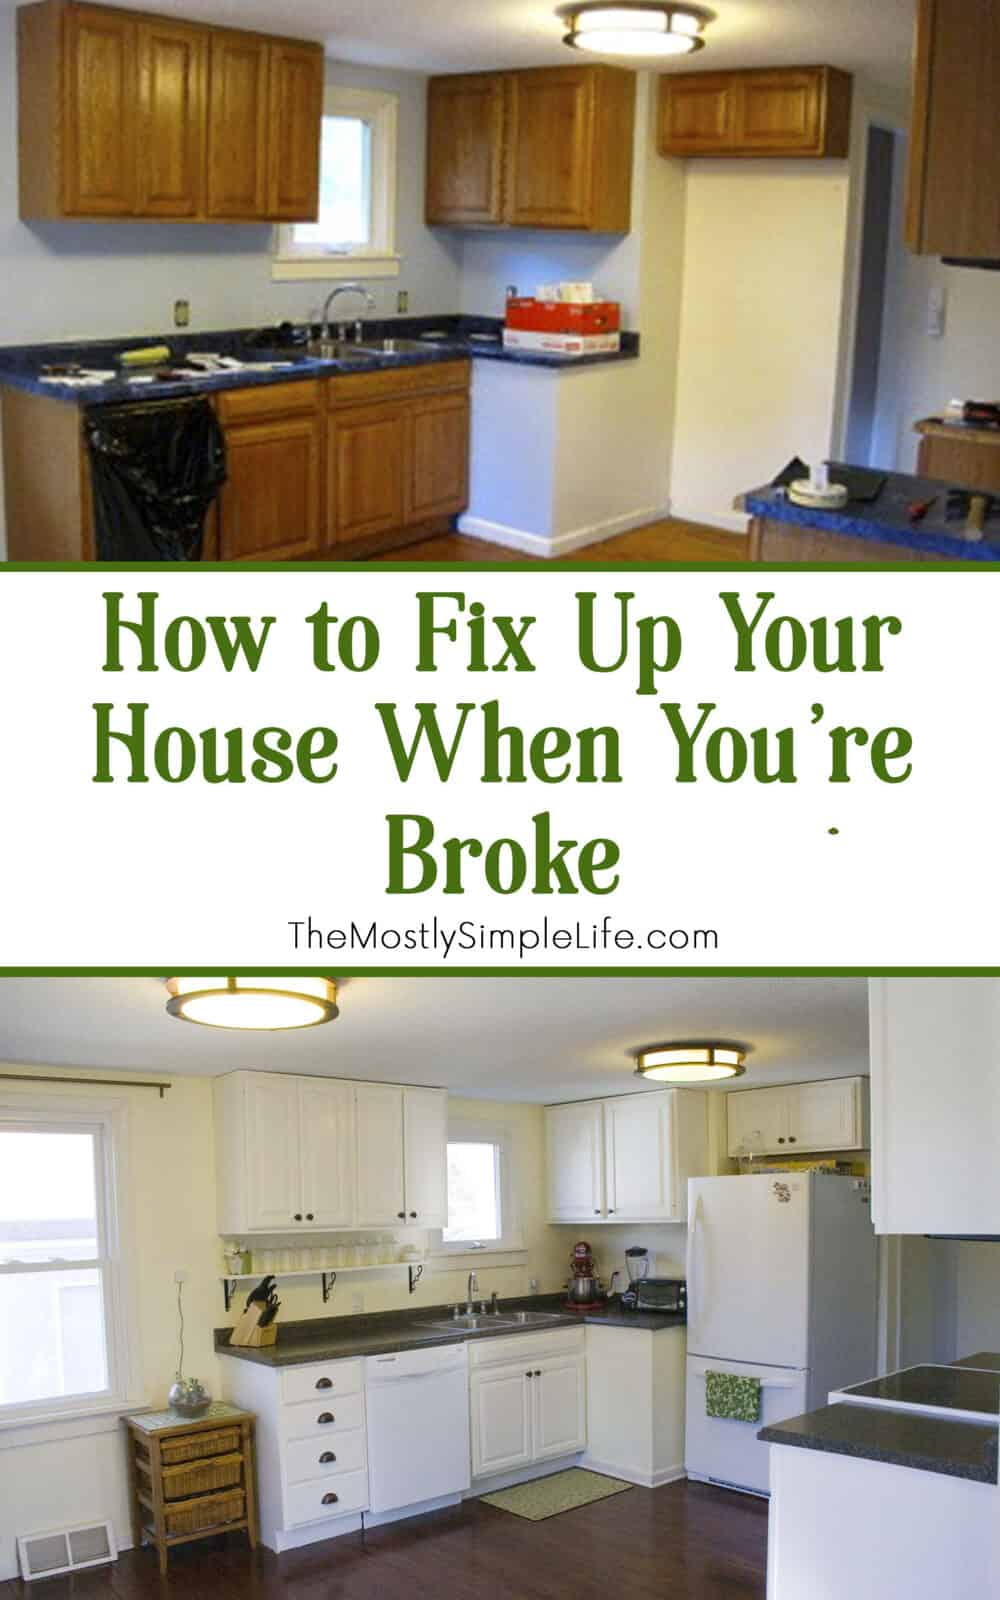 Repair Fixing How To Fix Up Your House When You Re Broke The Mostly Simple Life